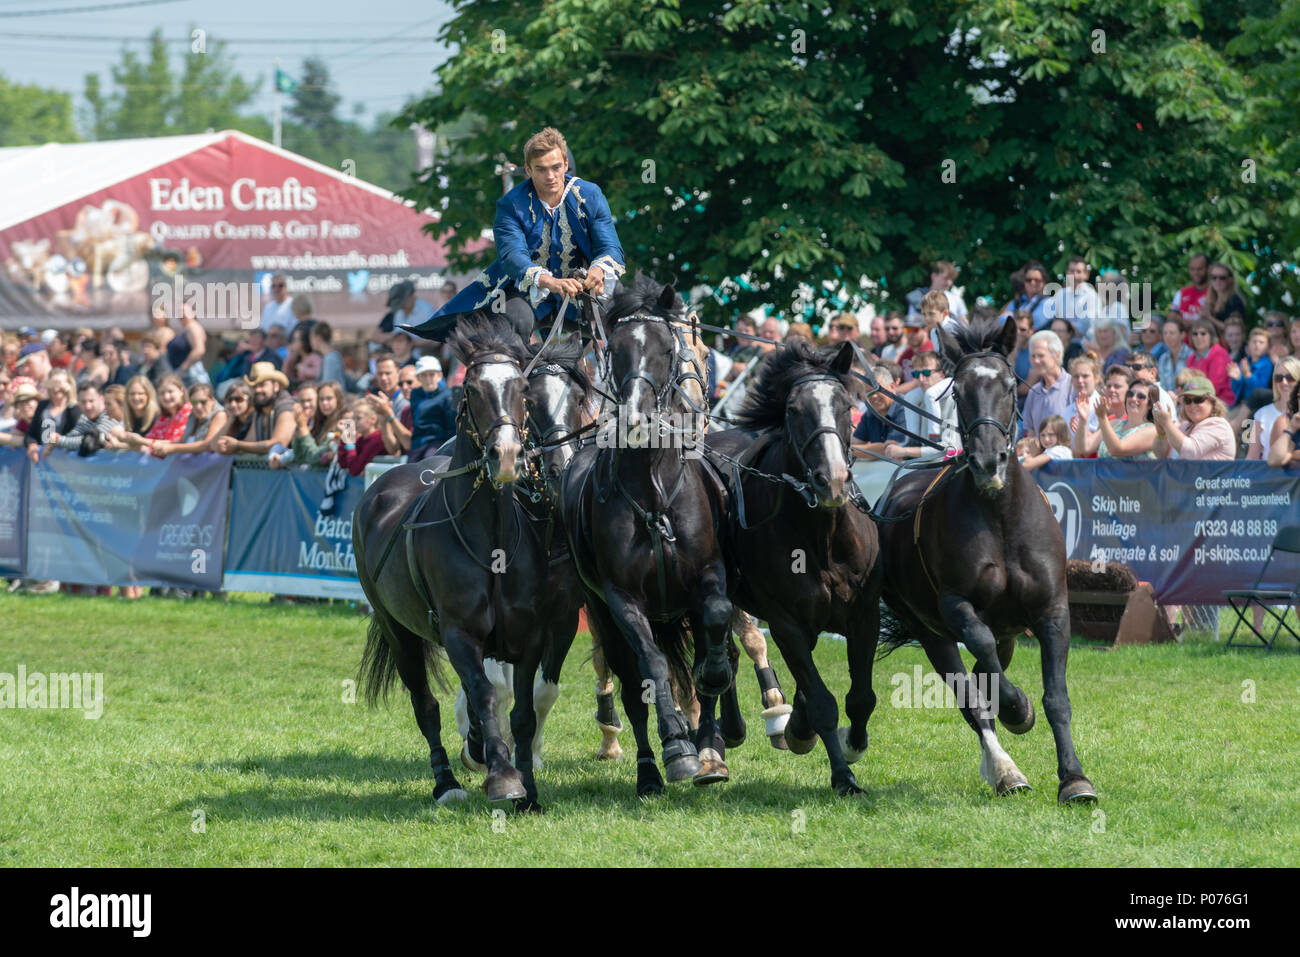 A rider from the Atkinson Action Horses stands on the back of two horses and controls four more horses while they gallop around the showground thrilling the crowd at the South Of England Show in Ardingly, Sussex, UK. Stock Photo